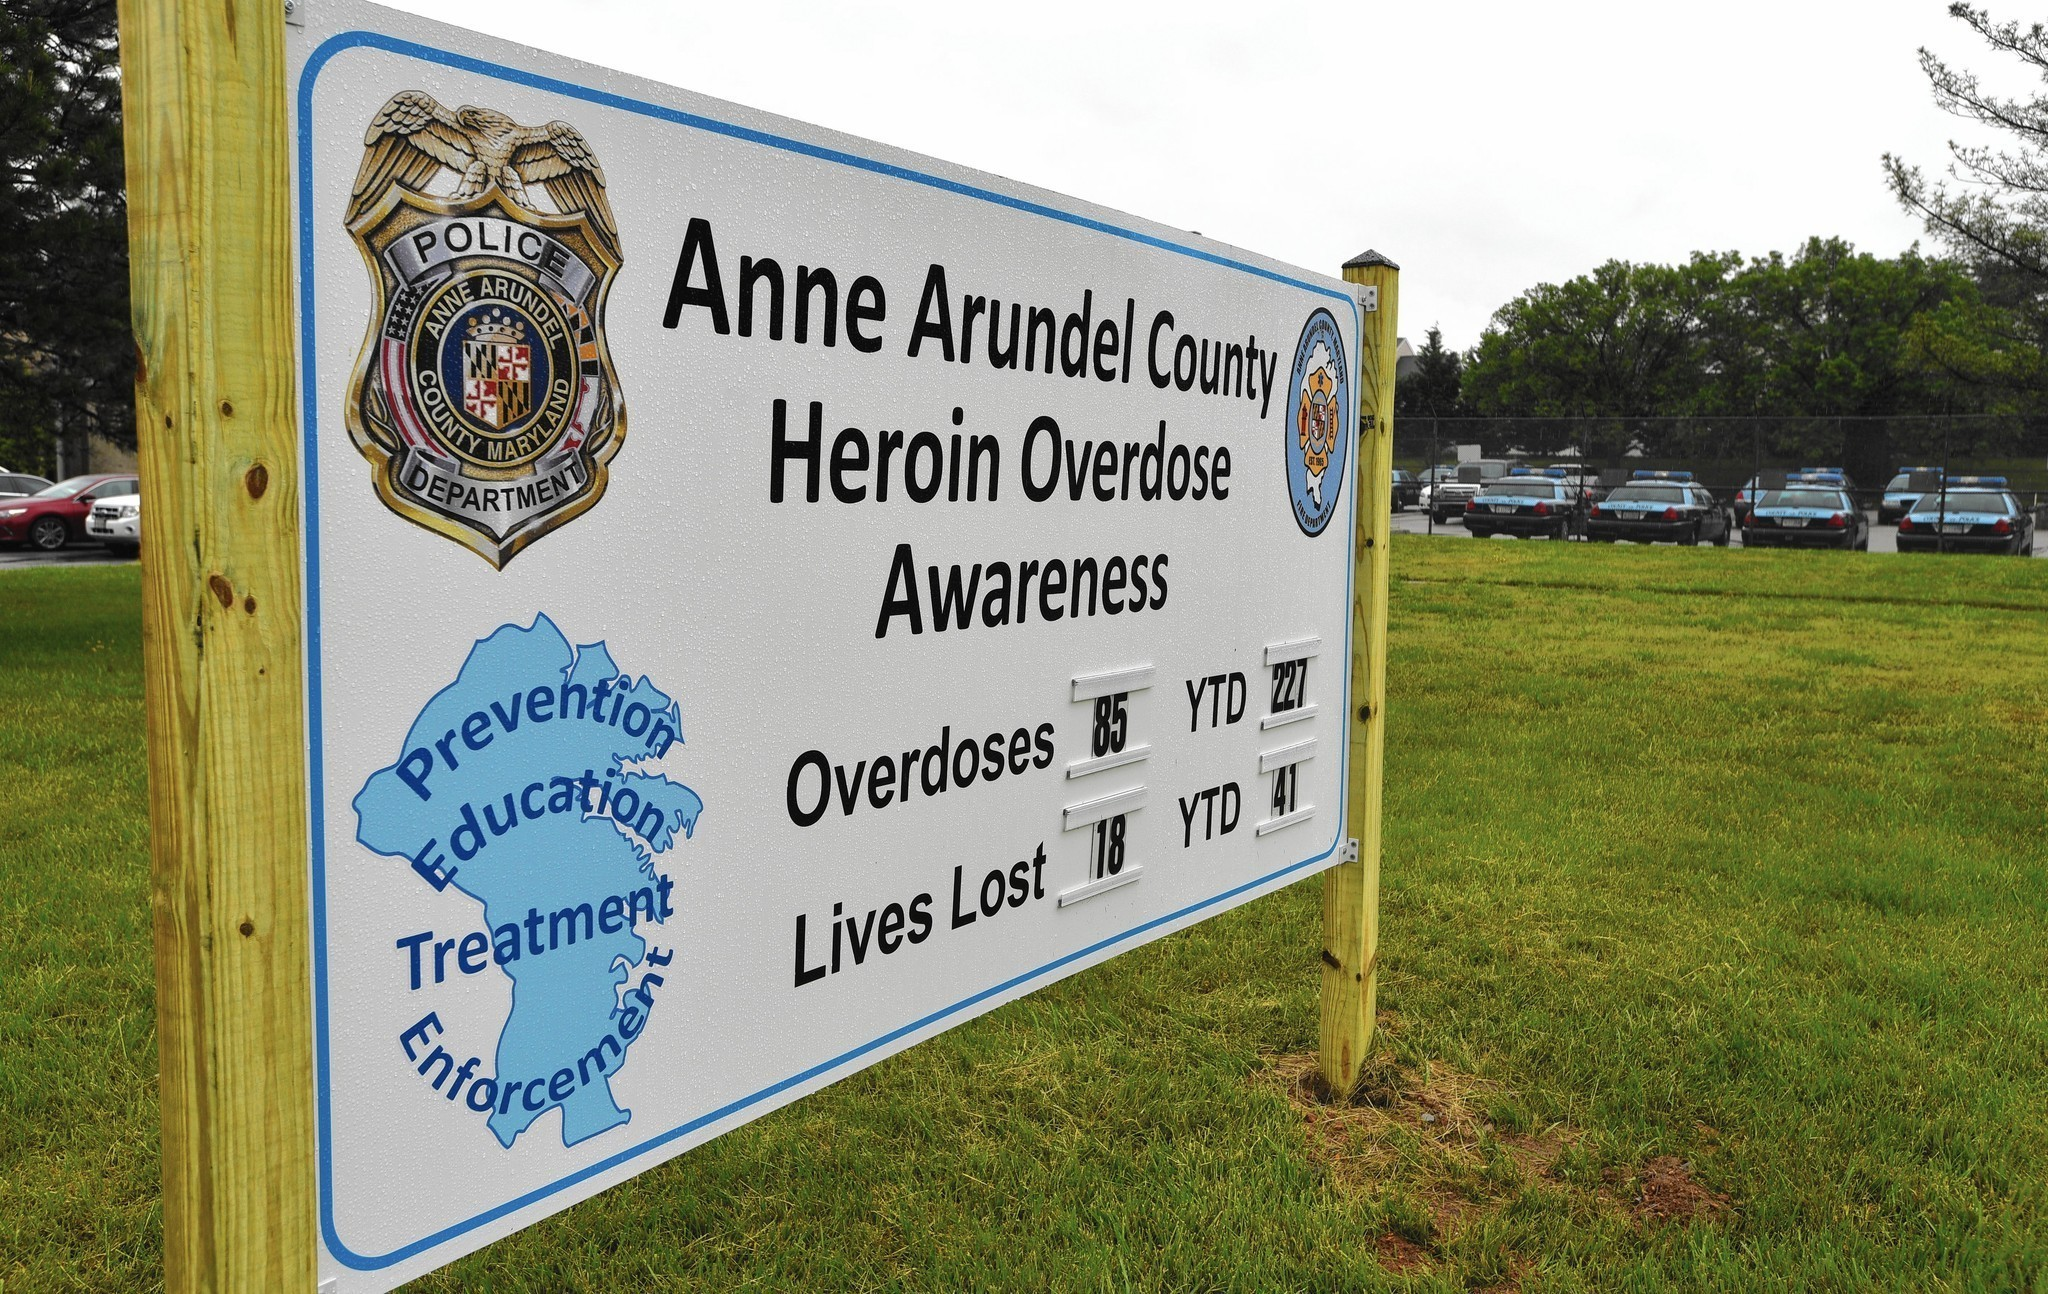 State data show rise in overdose deaths